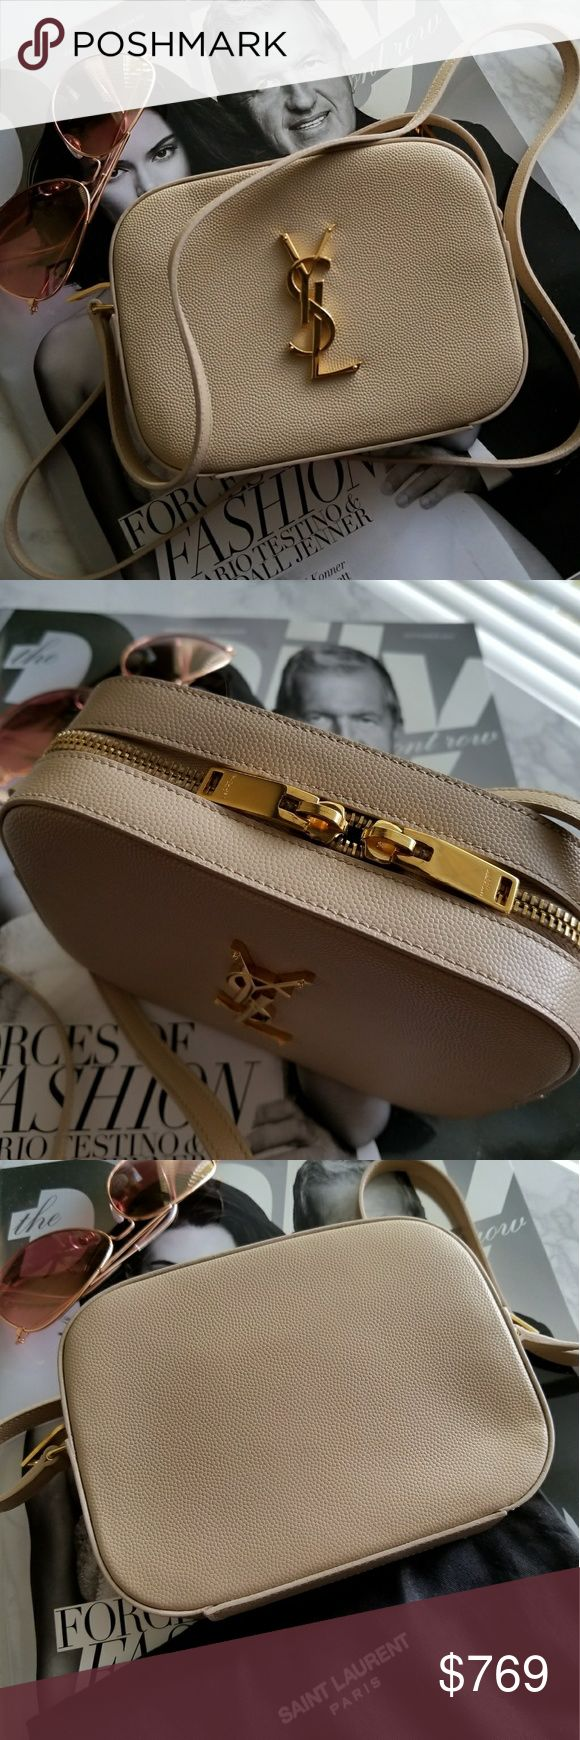 Saint Laurent Monogramme Grain Mini Bag 100% authentic saint laurent monogram mini bag. Crossbody. Nude poudre color. Has card compartments and a bigger one inside. Small and would fit only a small wallet like a card case style and an iphone (not the plus). I prefer wearing this out at night with just my cards, lipstick, keys and phone. Used a few times only. No scratches or scuffs. Comes with dust bag and the card that came with it. Saint Laurent Bags Mini Bags